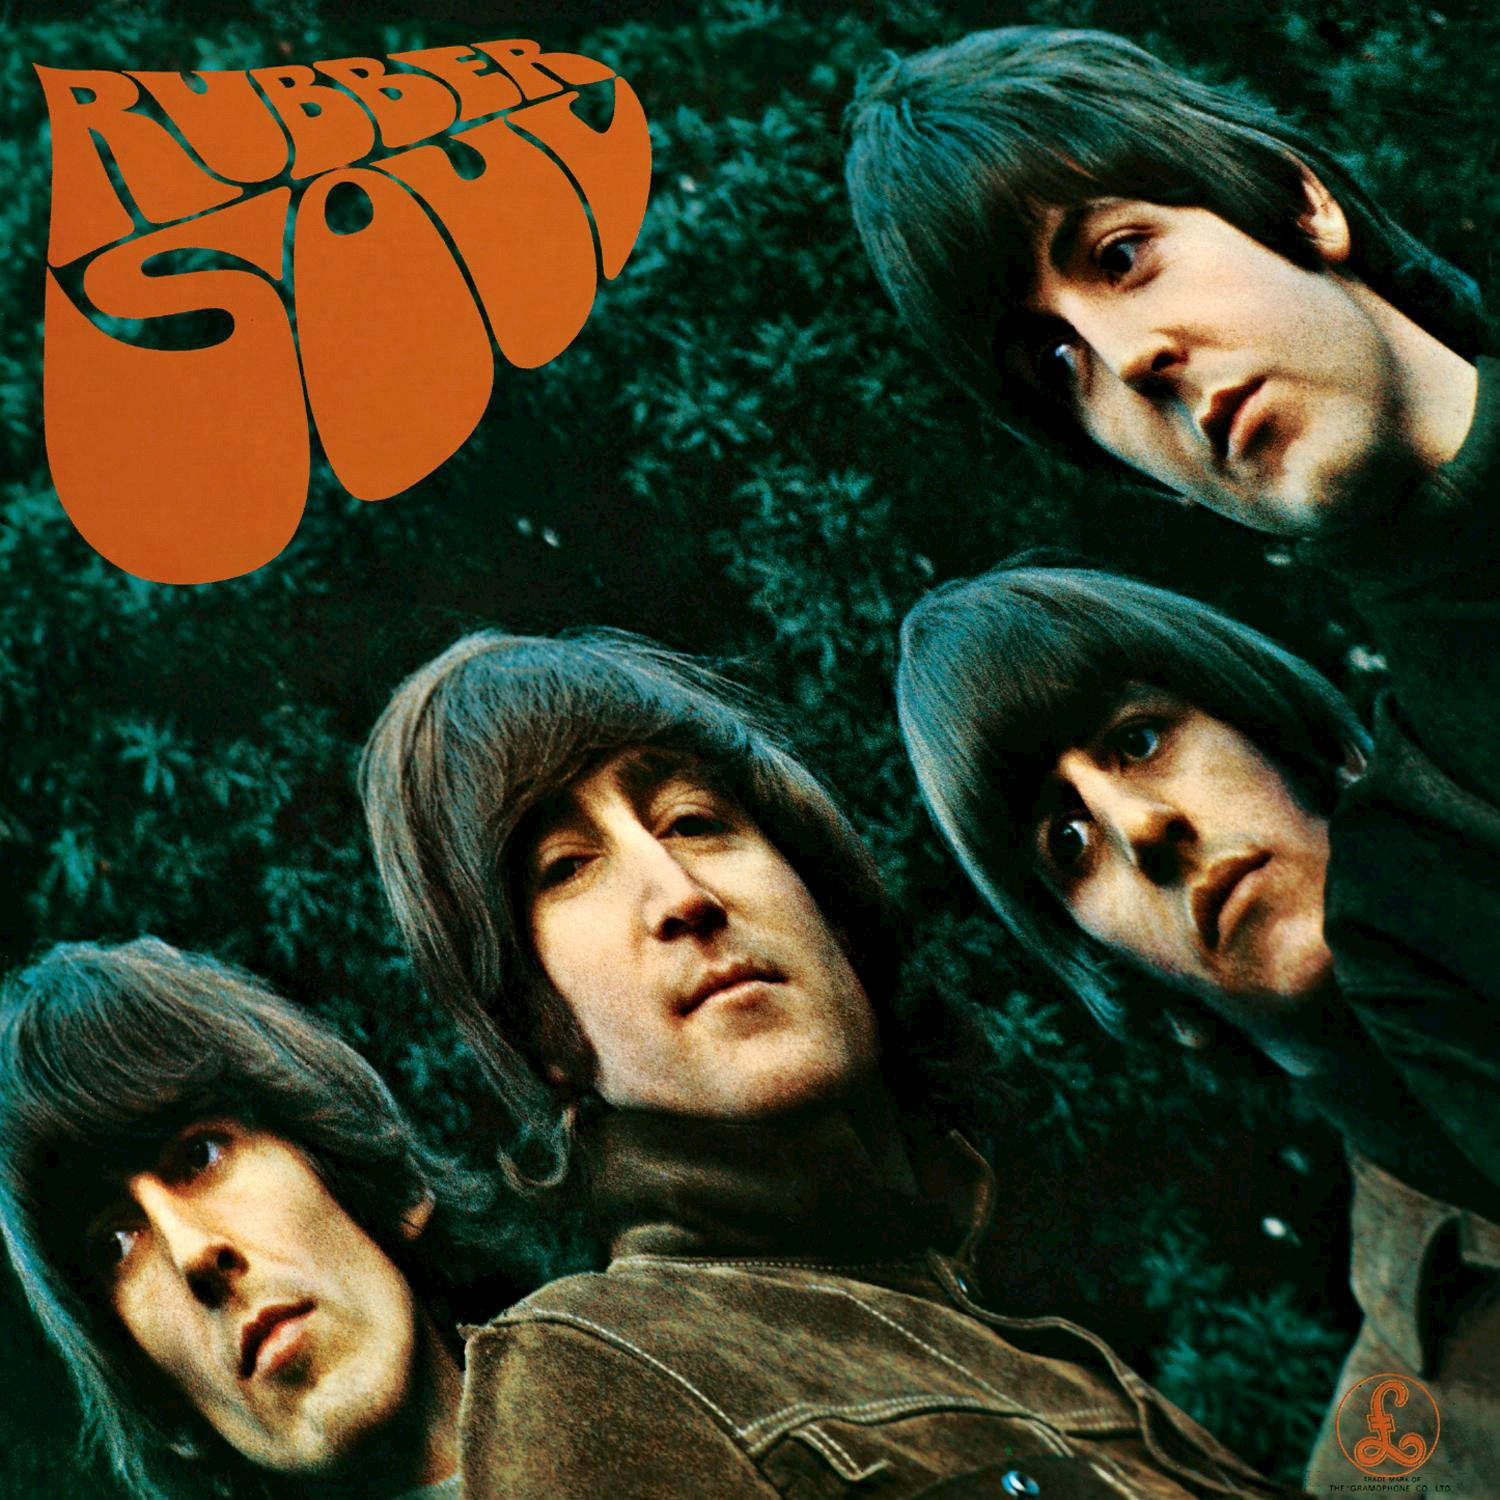 The Beatles – Rubber Soul (REISSUE REMASTERED LP) (2017) [FLAC]